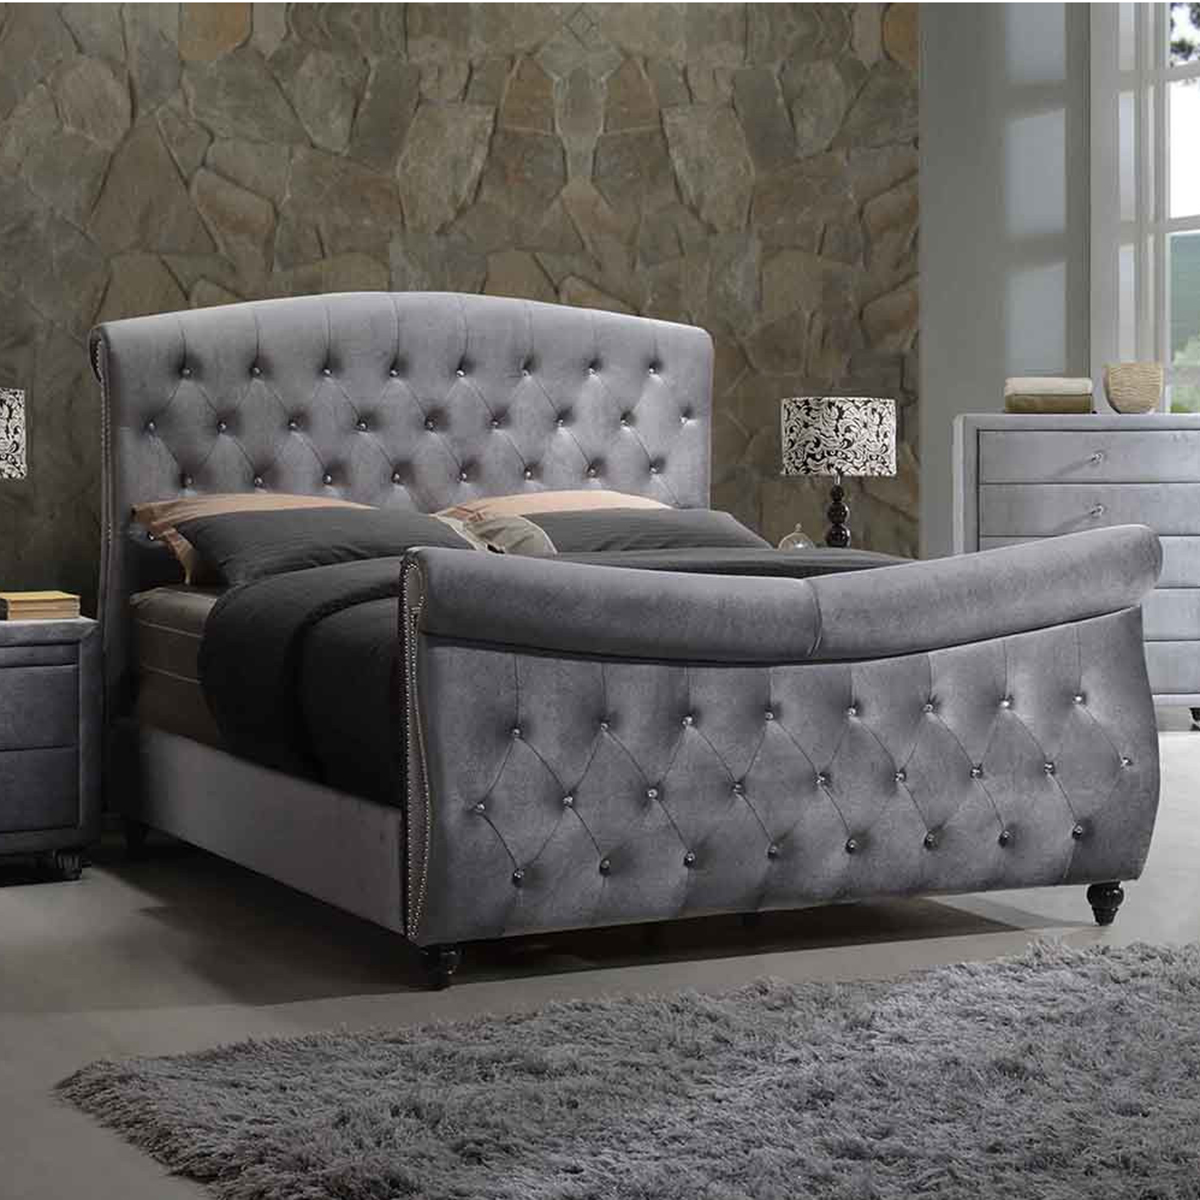 Meridian Furniture Hudson Sleigh K Hudson Grey Velvet King